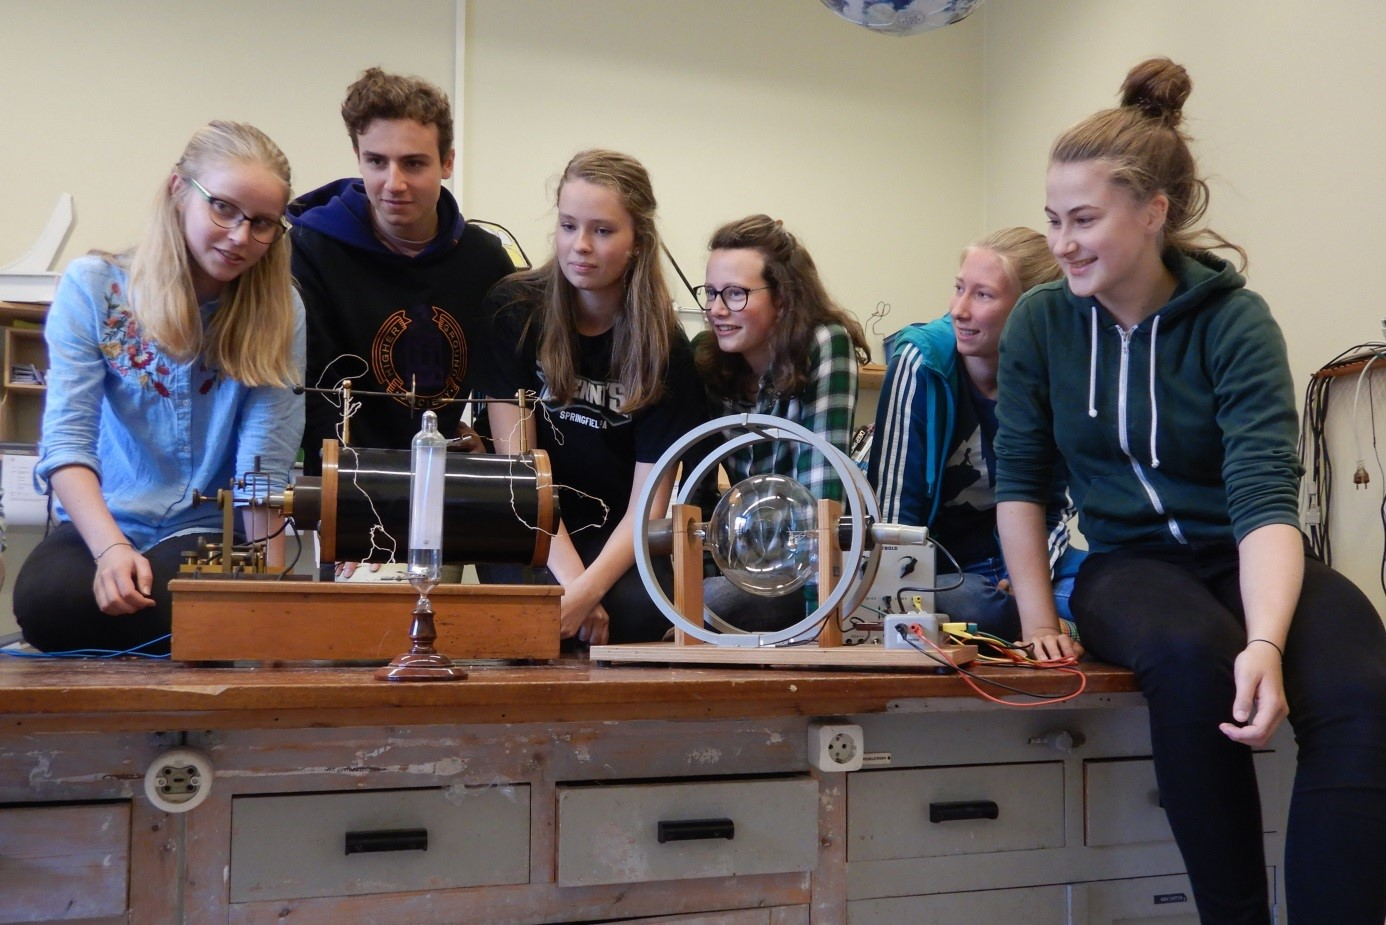 The particle peers (Isabelle Koster, Abracha Koens, Cecile Wiersema, Janiek Weening, Frederiek de Bruine, and Ilja de Goede) in the physics lecture room of the Praedinius gymnasium Groningen (photo credit Kirsten Stadermann)